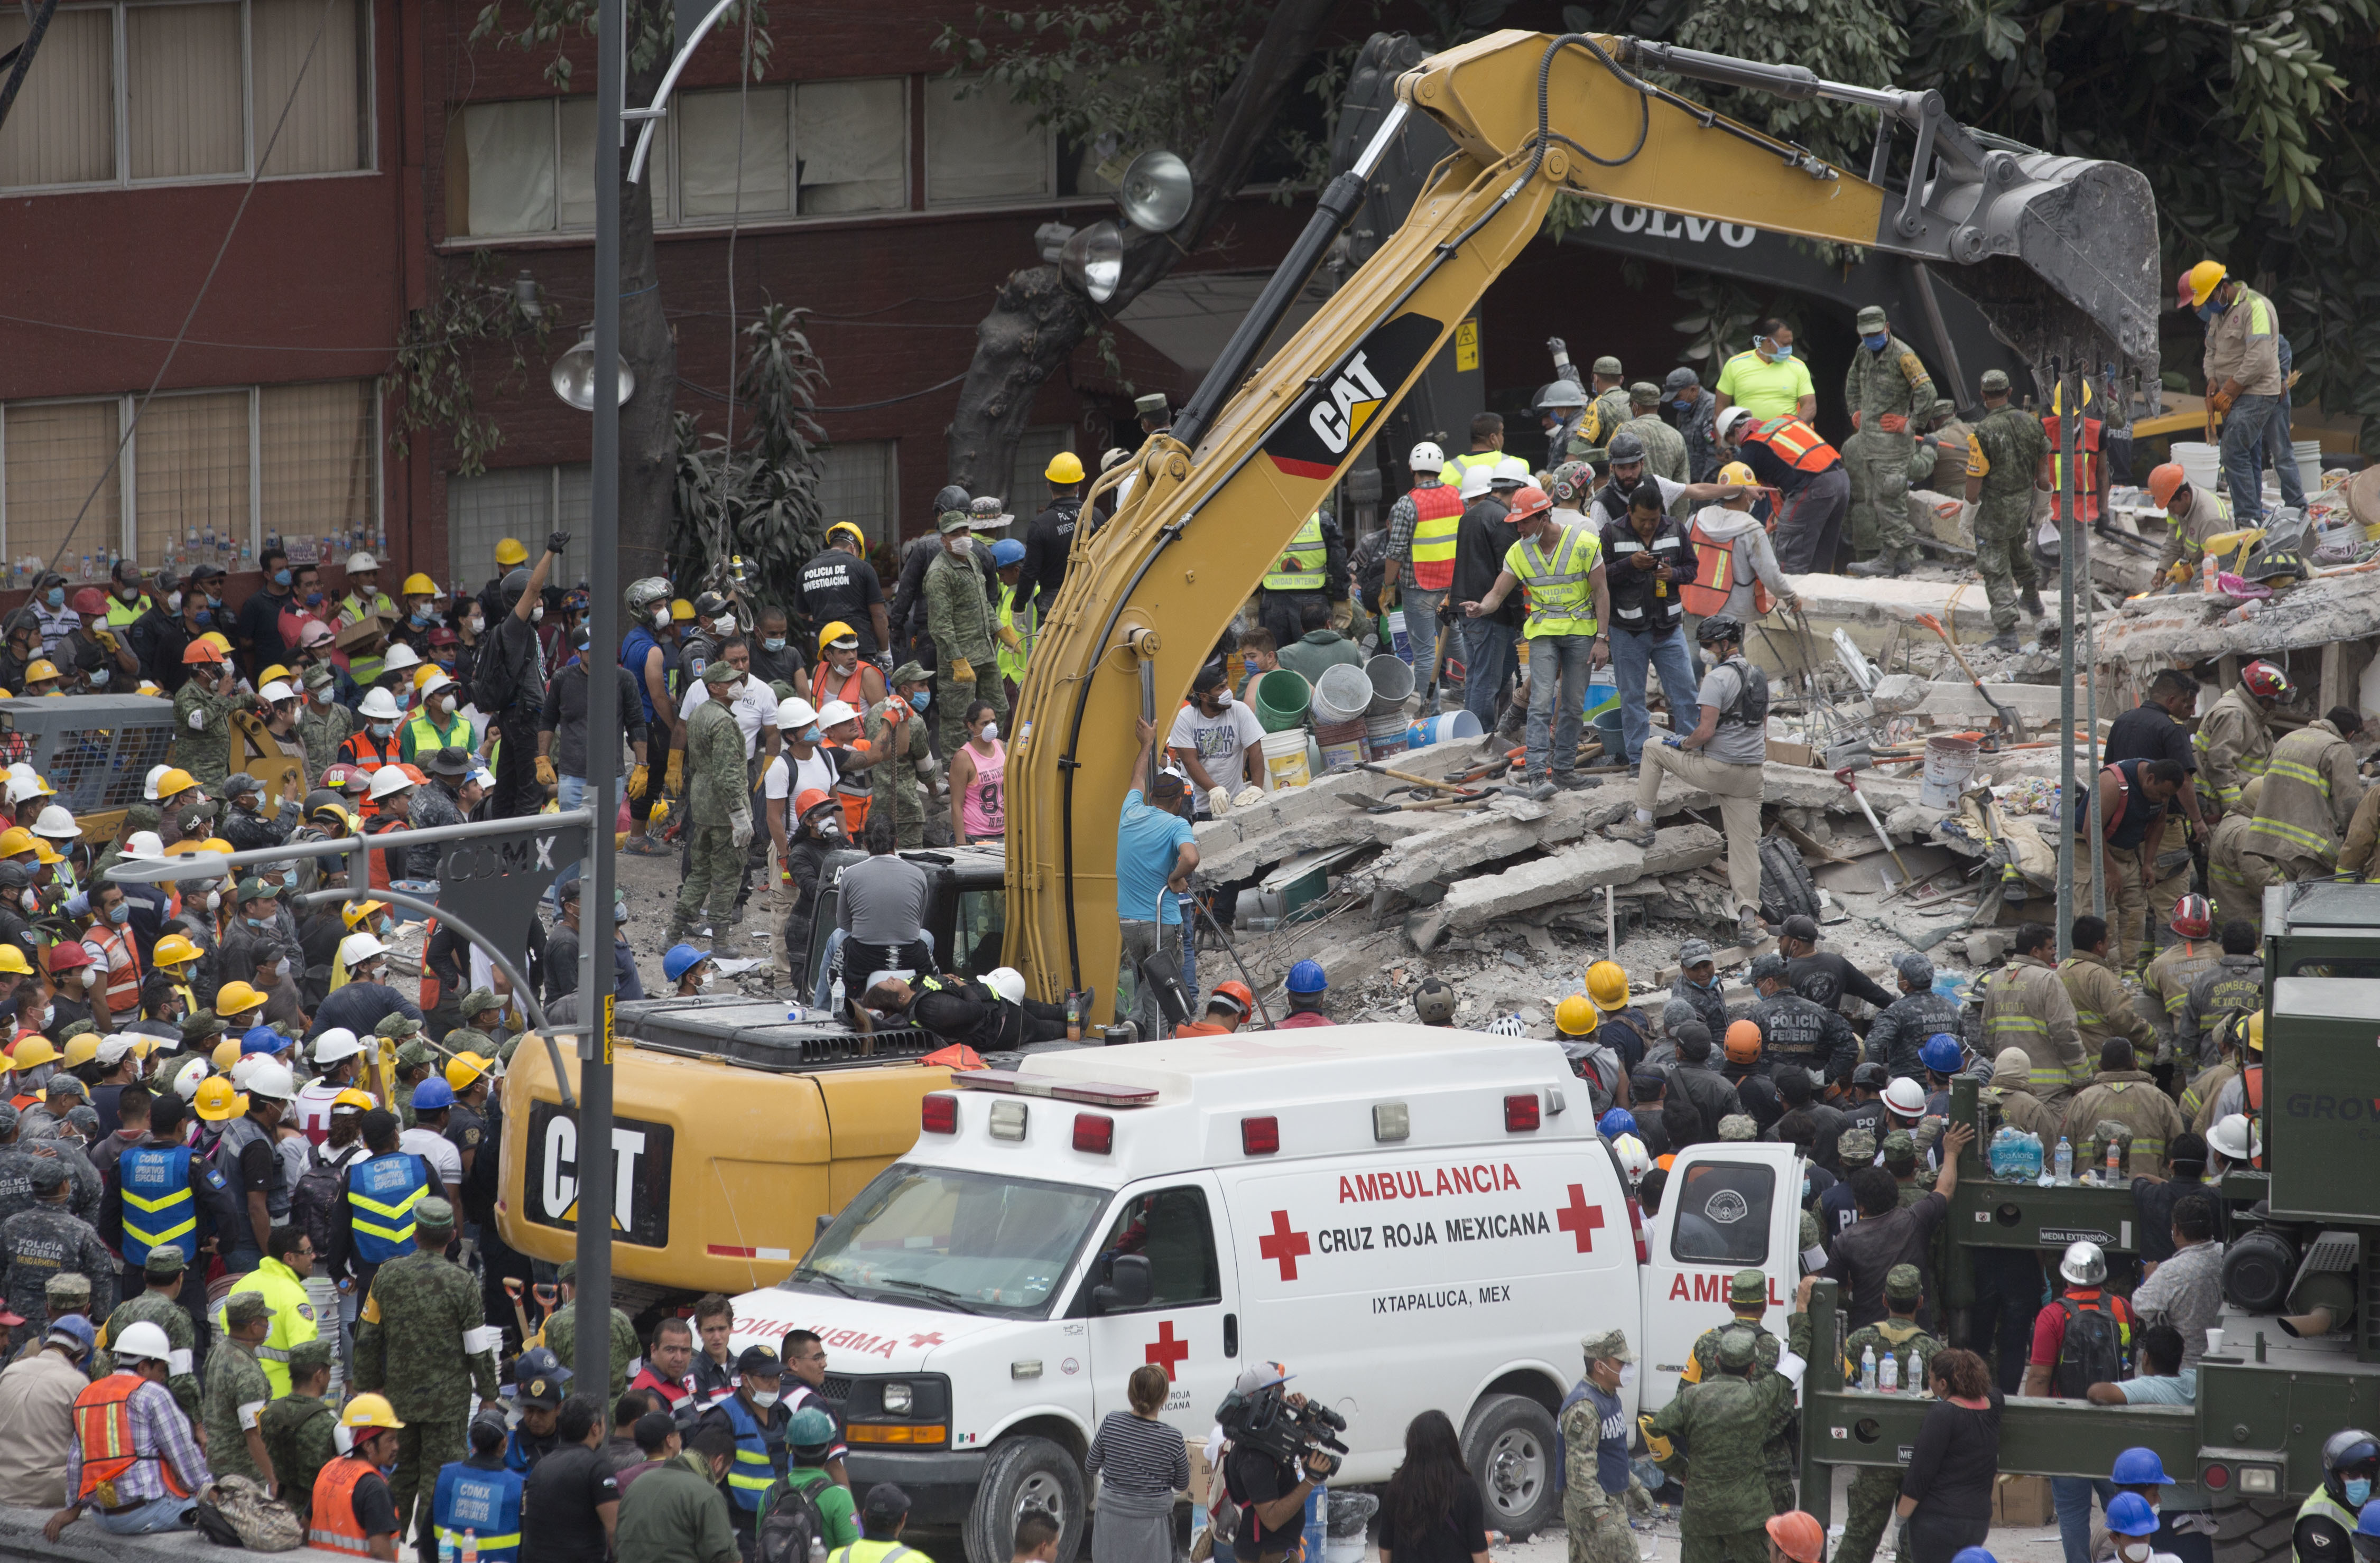 Rescue personnel work on a collapsed building, a day after a devastating 7.1 earthquake, in the Del Valle neighborhood of Mexico City, Wednesday, Sept. 20, 2107. Efforts continue at the scenes of dozens of collapsed buildings, where firefighters, police, soldiers and civilians continue their search to reach the living. (AP Photo/Moises Castillo)